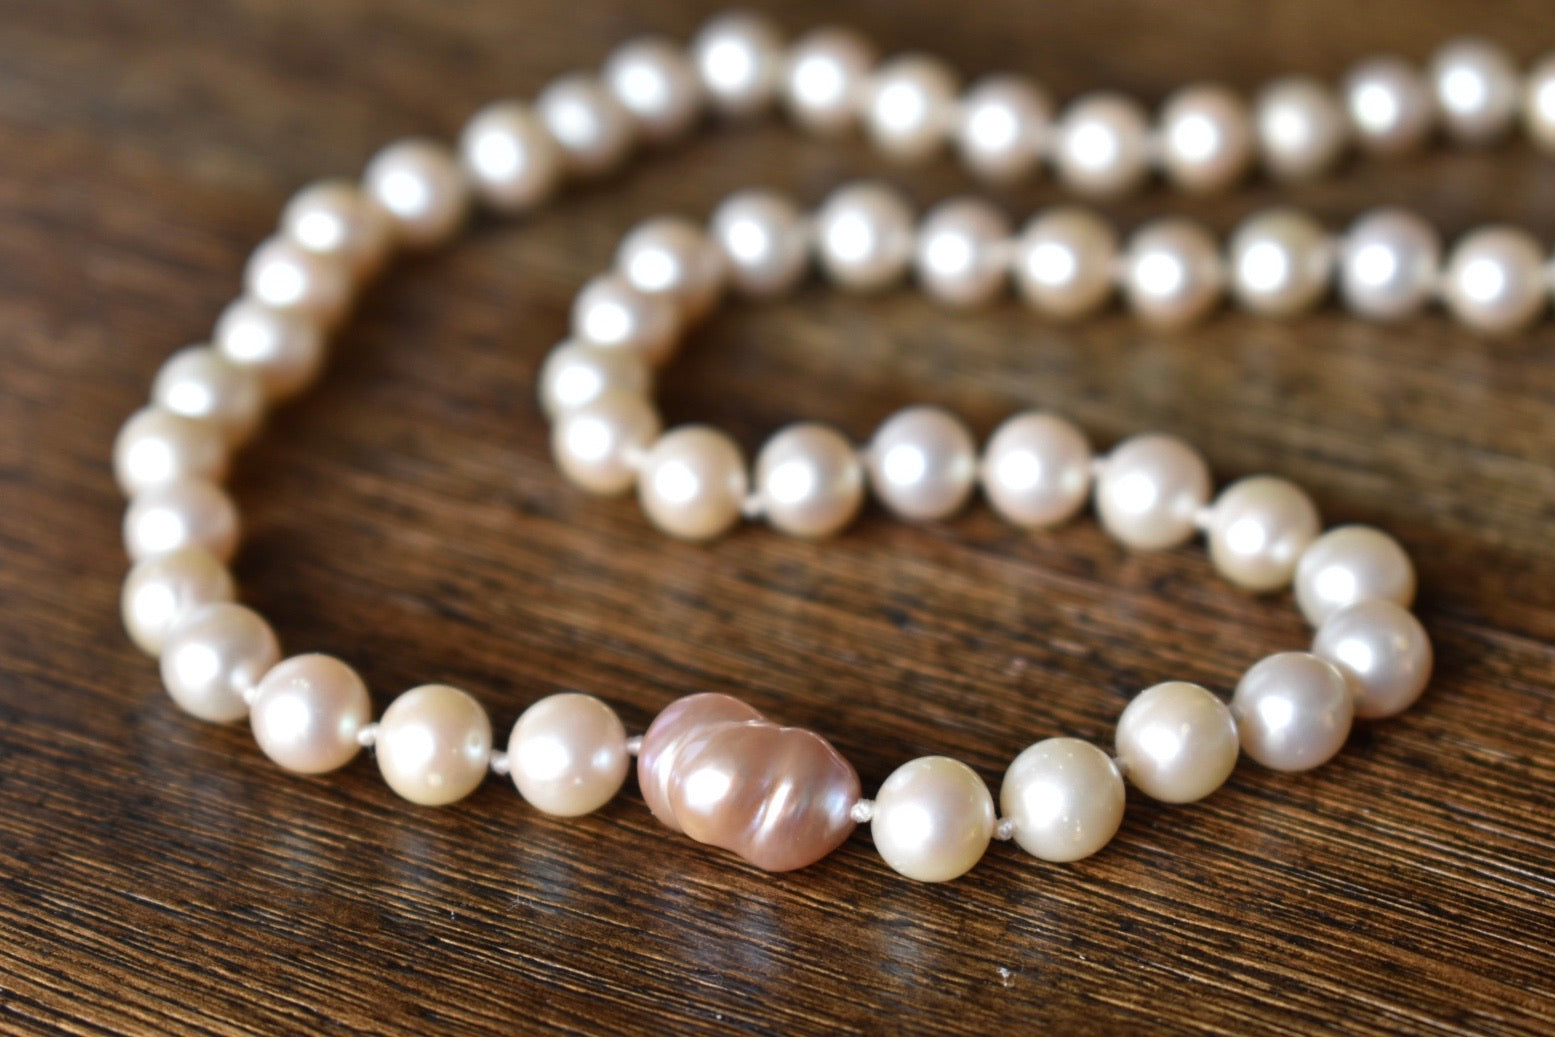 Pink Heart-Shaped Baroque and White Round Freshwater Pearl Necklace, 7.5-8mm